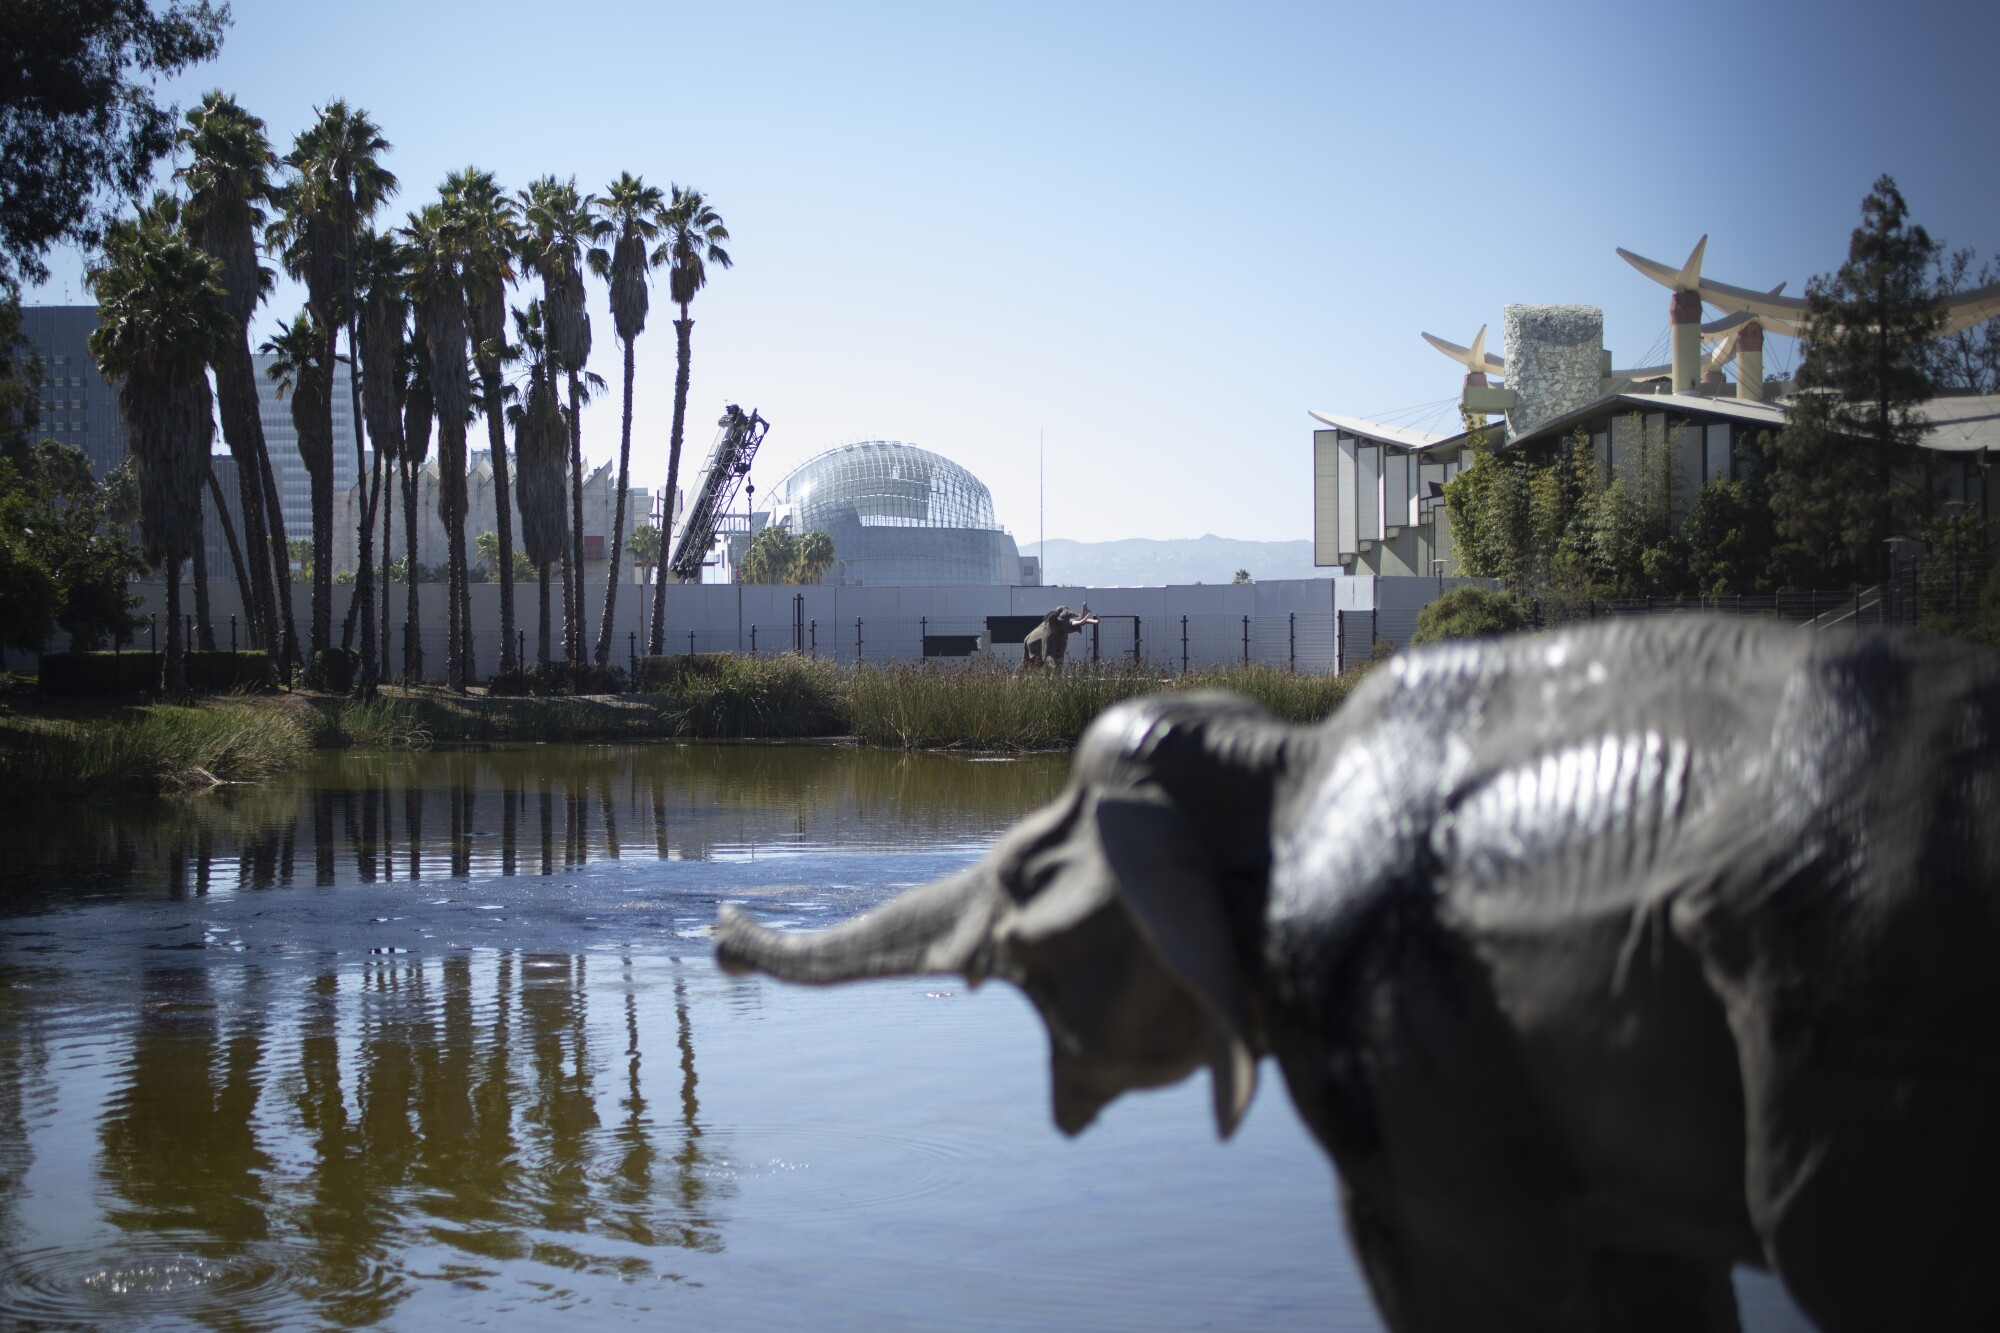 The spherical form of the Geffen Theater is seen in the distance, beyond the Lake Pit and a sculpture of a baby mammoth